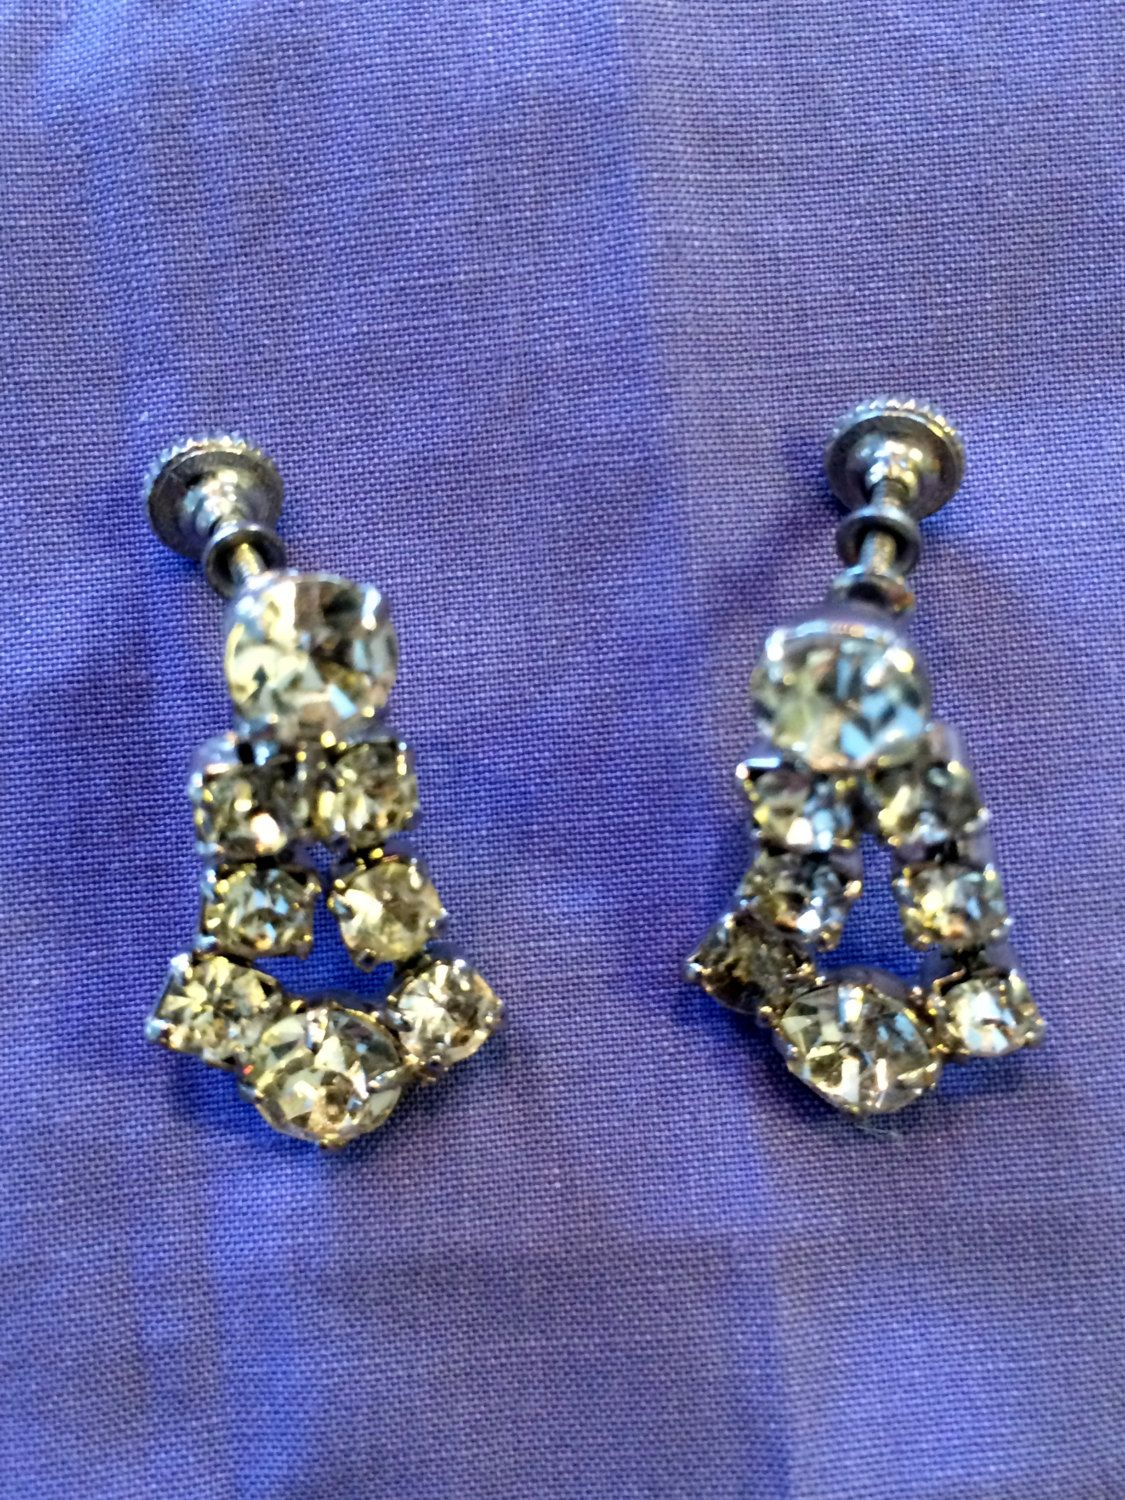 Retro Glam Earrings / Faux Diamond and Pearls / Buy 1 or All by ModernaireMCMStudios on Etsy